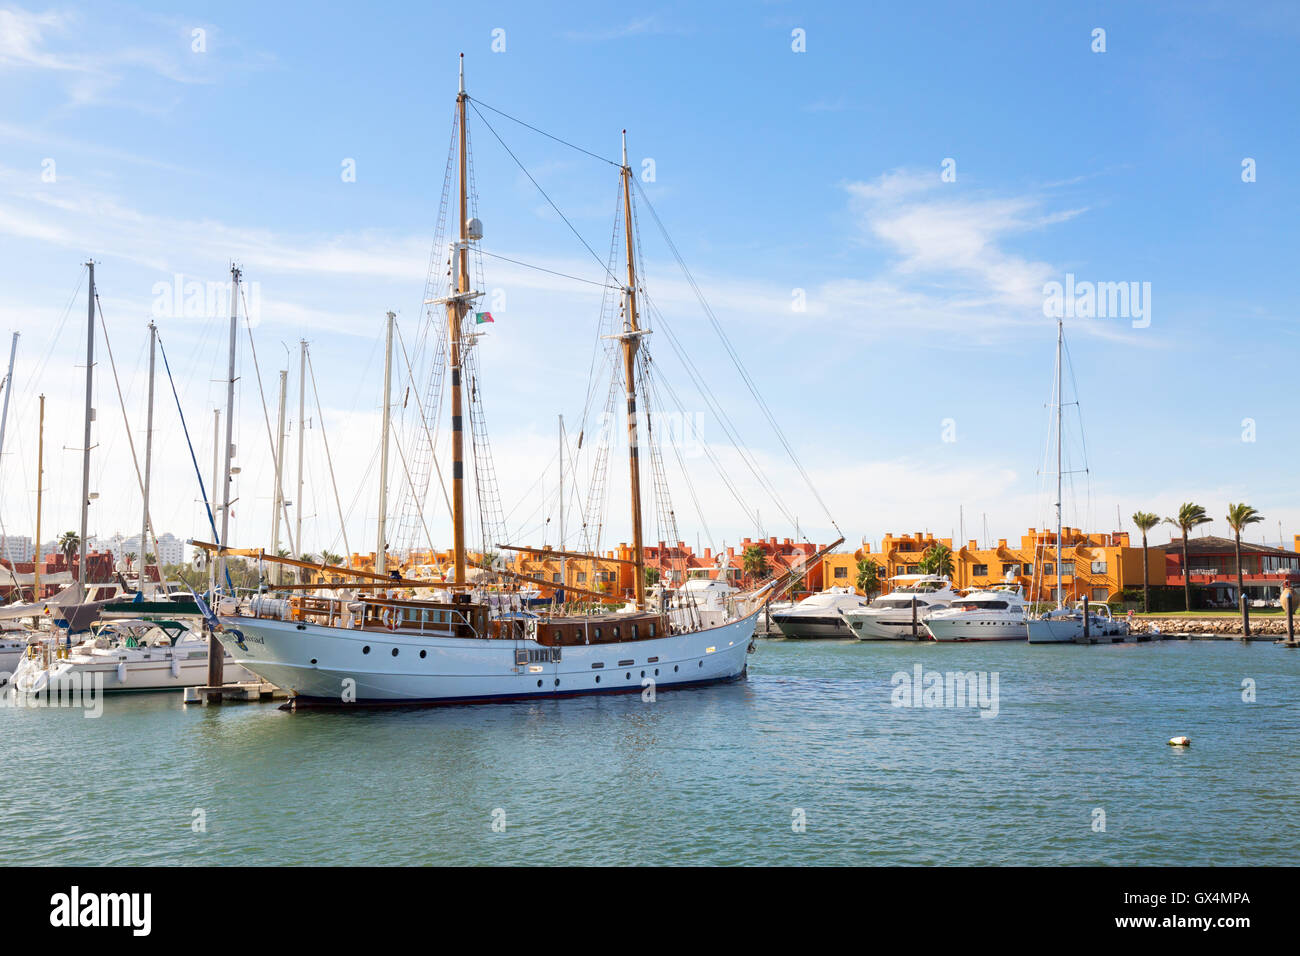 A sailboat moored in Portimao marina, Portimao, Algarve, Portugal, Europe - Stock Image